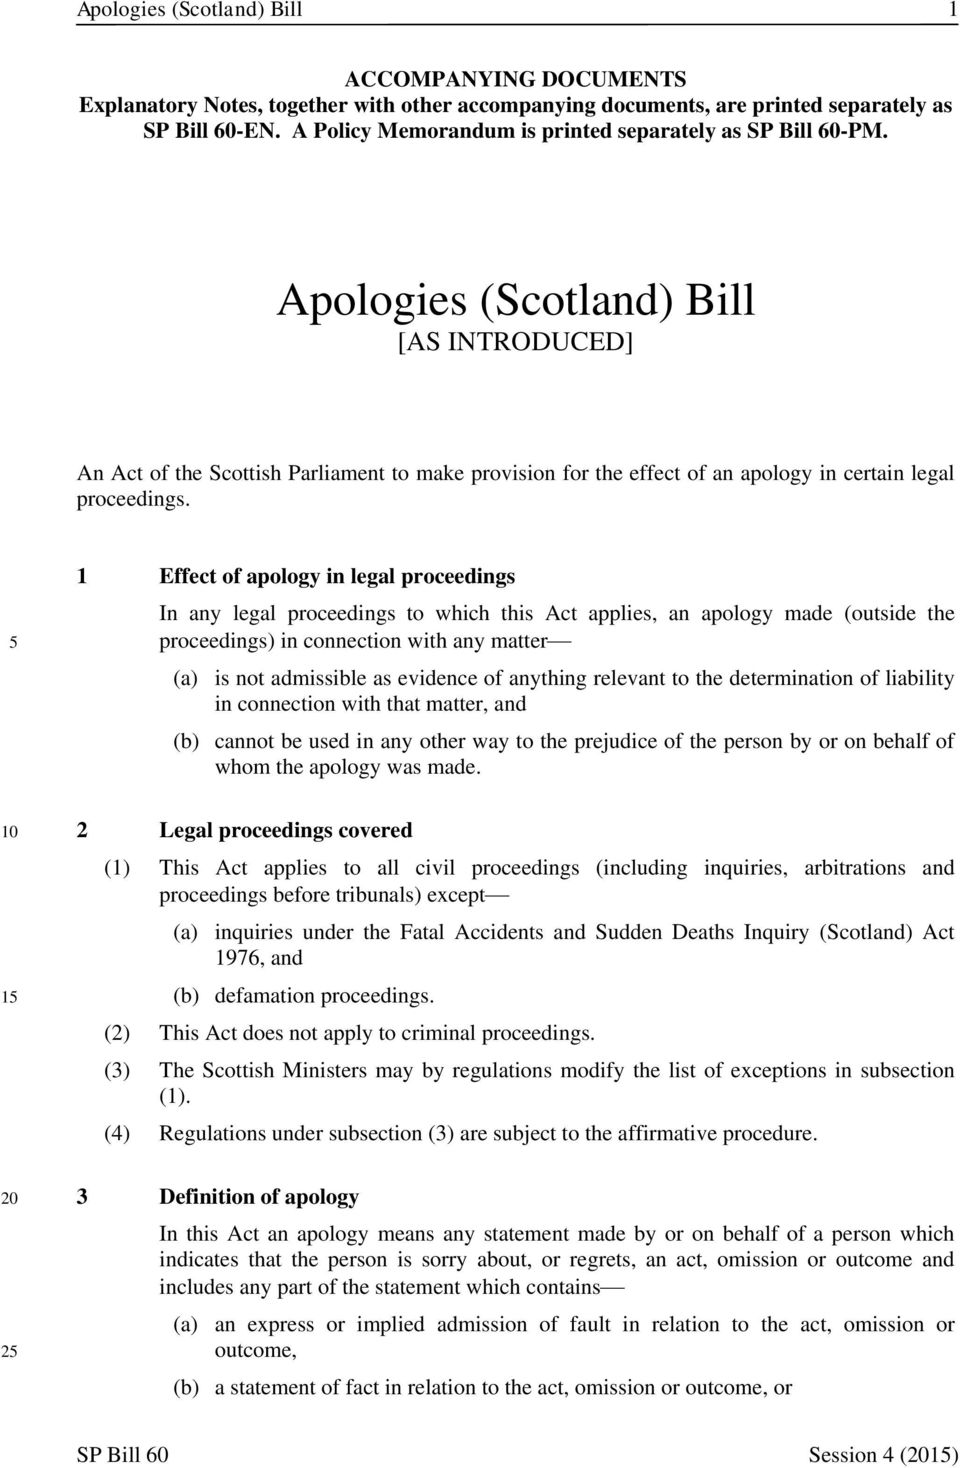 Apologies (Scotland) Bill [AS INTRODUCED] An Act of the Scottish Parliament to make provision for the effect of an apology in certain legal proceedings.